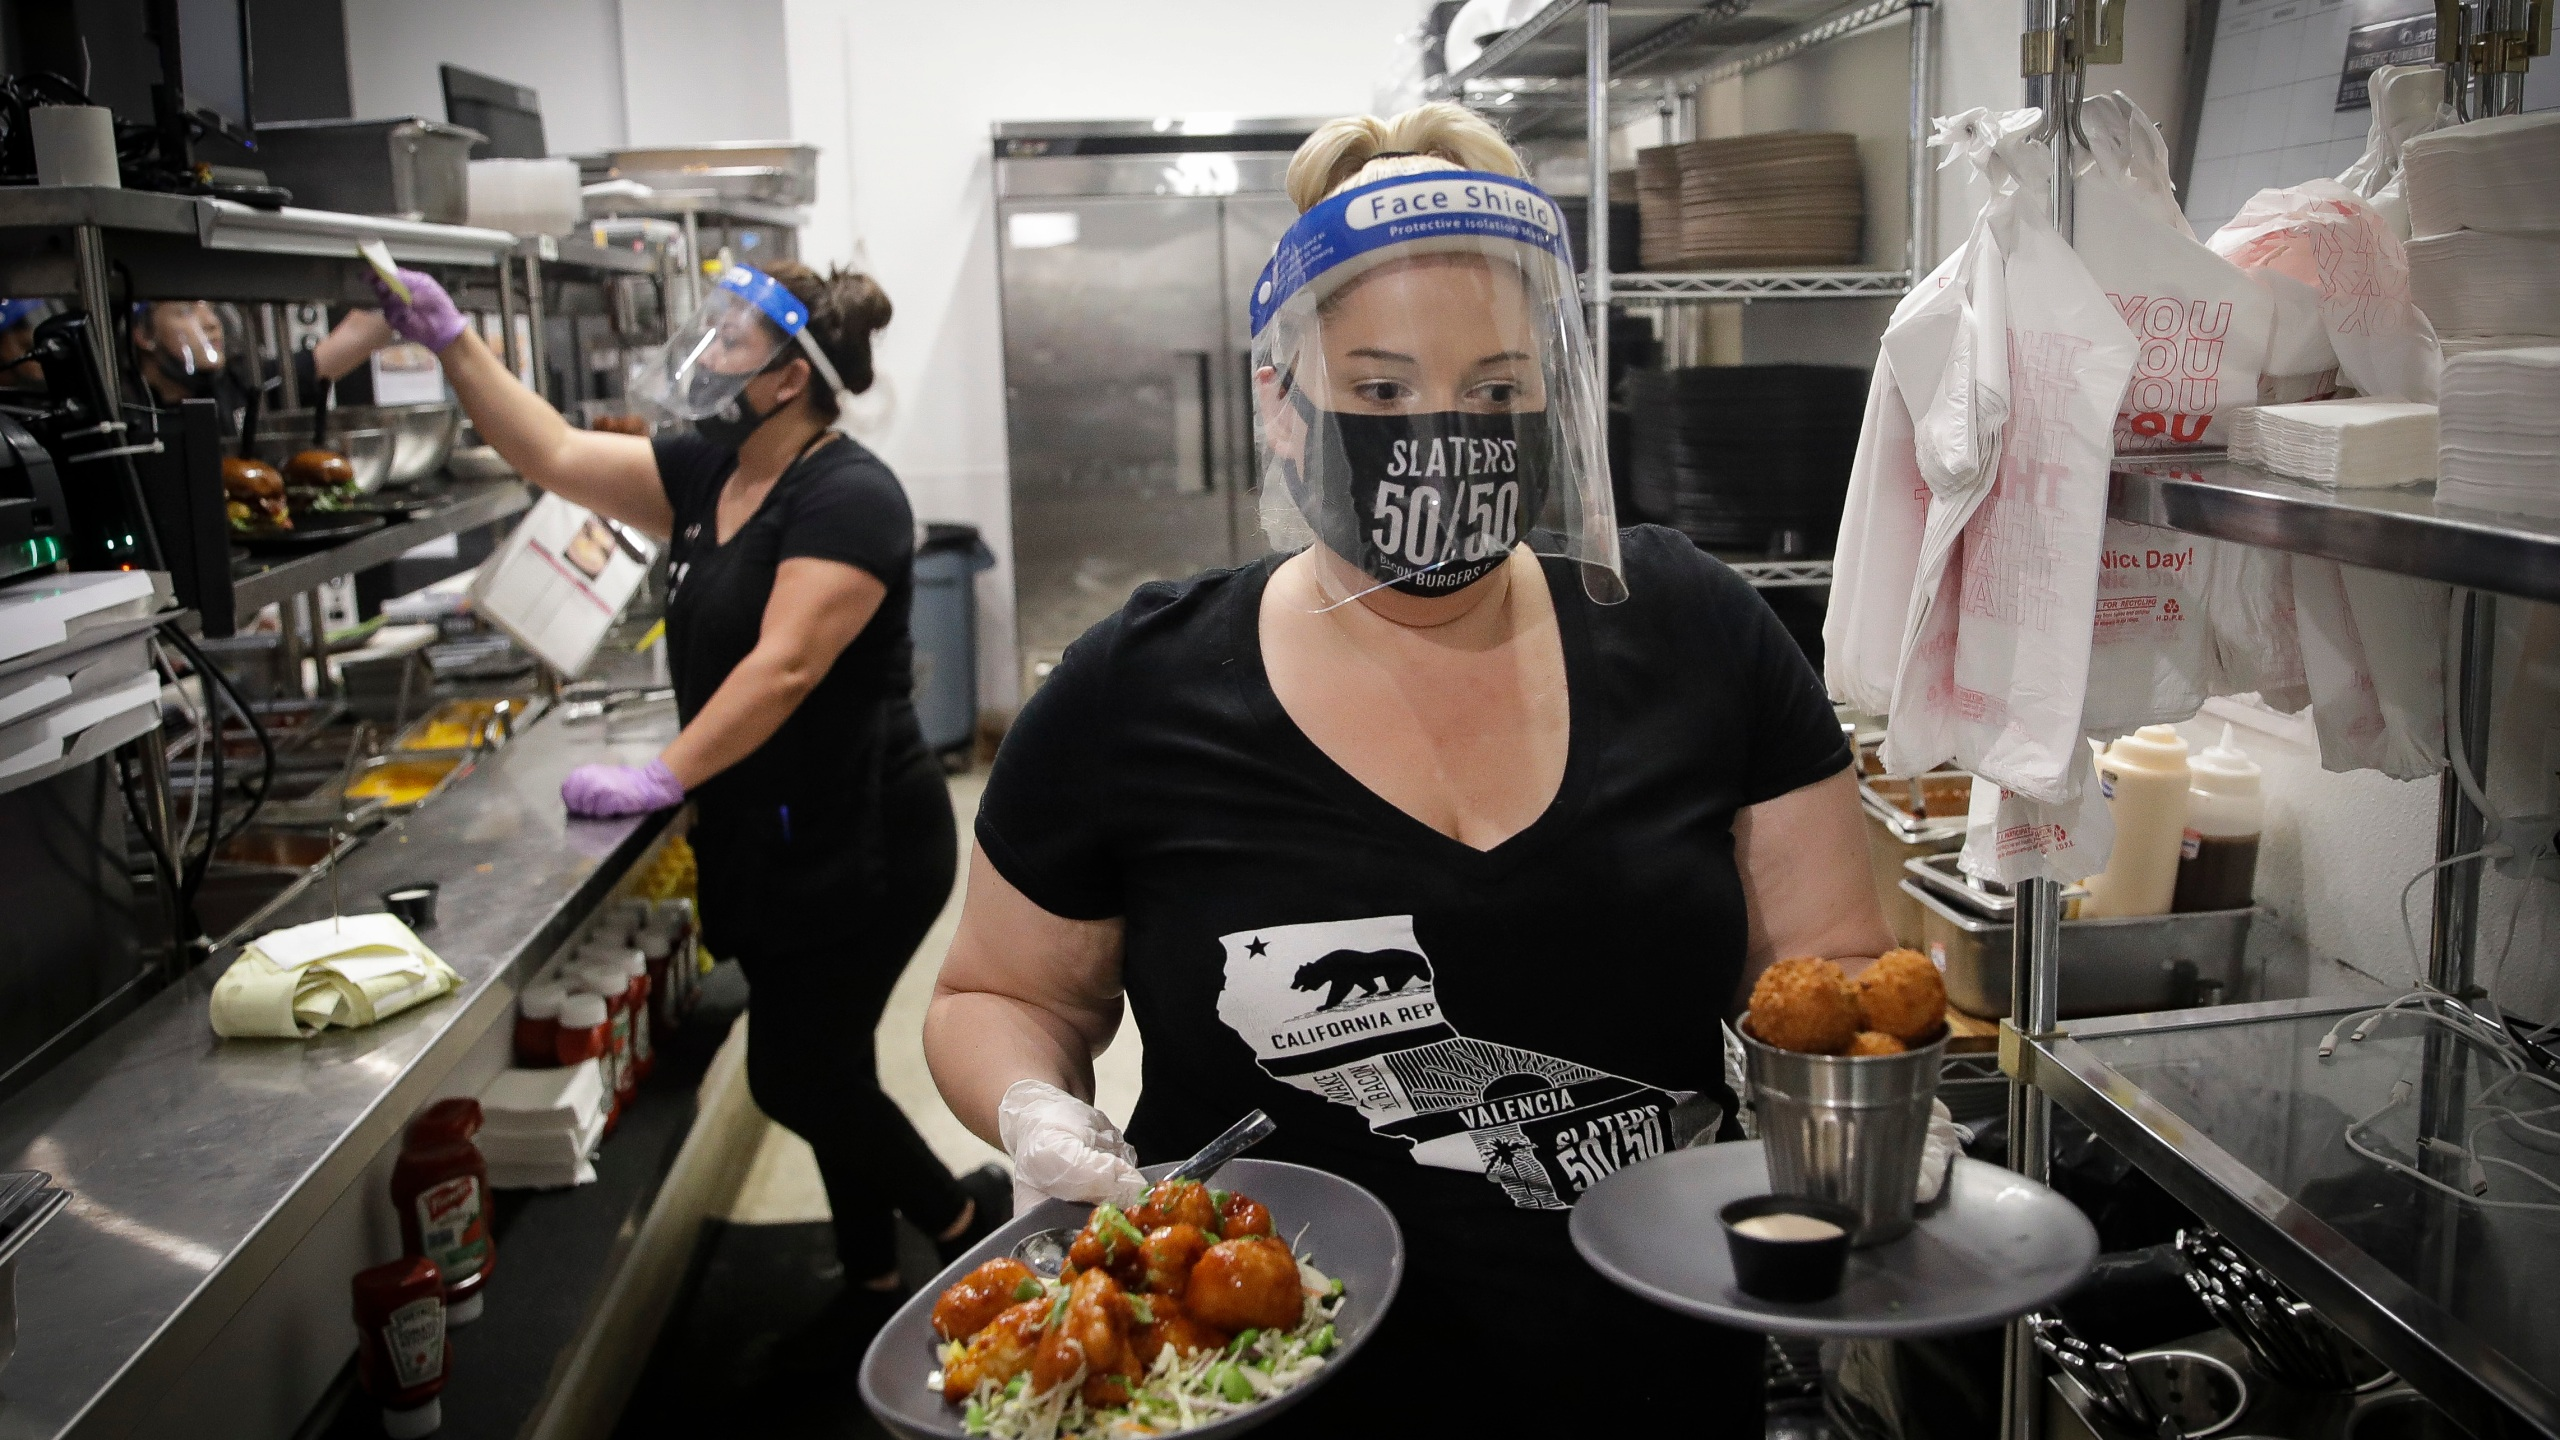 A waitress takes a food order from the kitchen at Slater's 50/50 on July 1, 2020, in Santa Clarita. (AP Photo/Marcio Jose Sanchez)